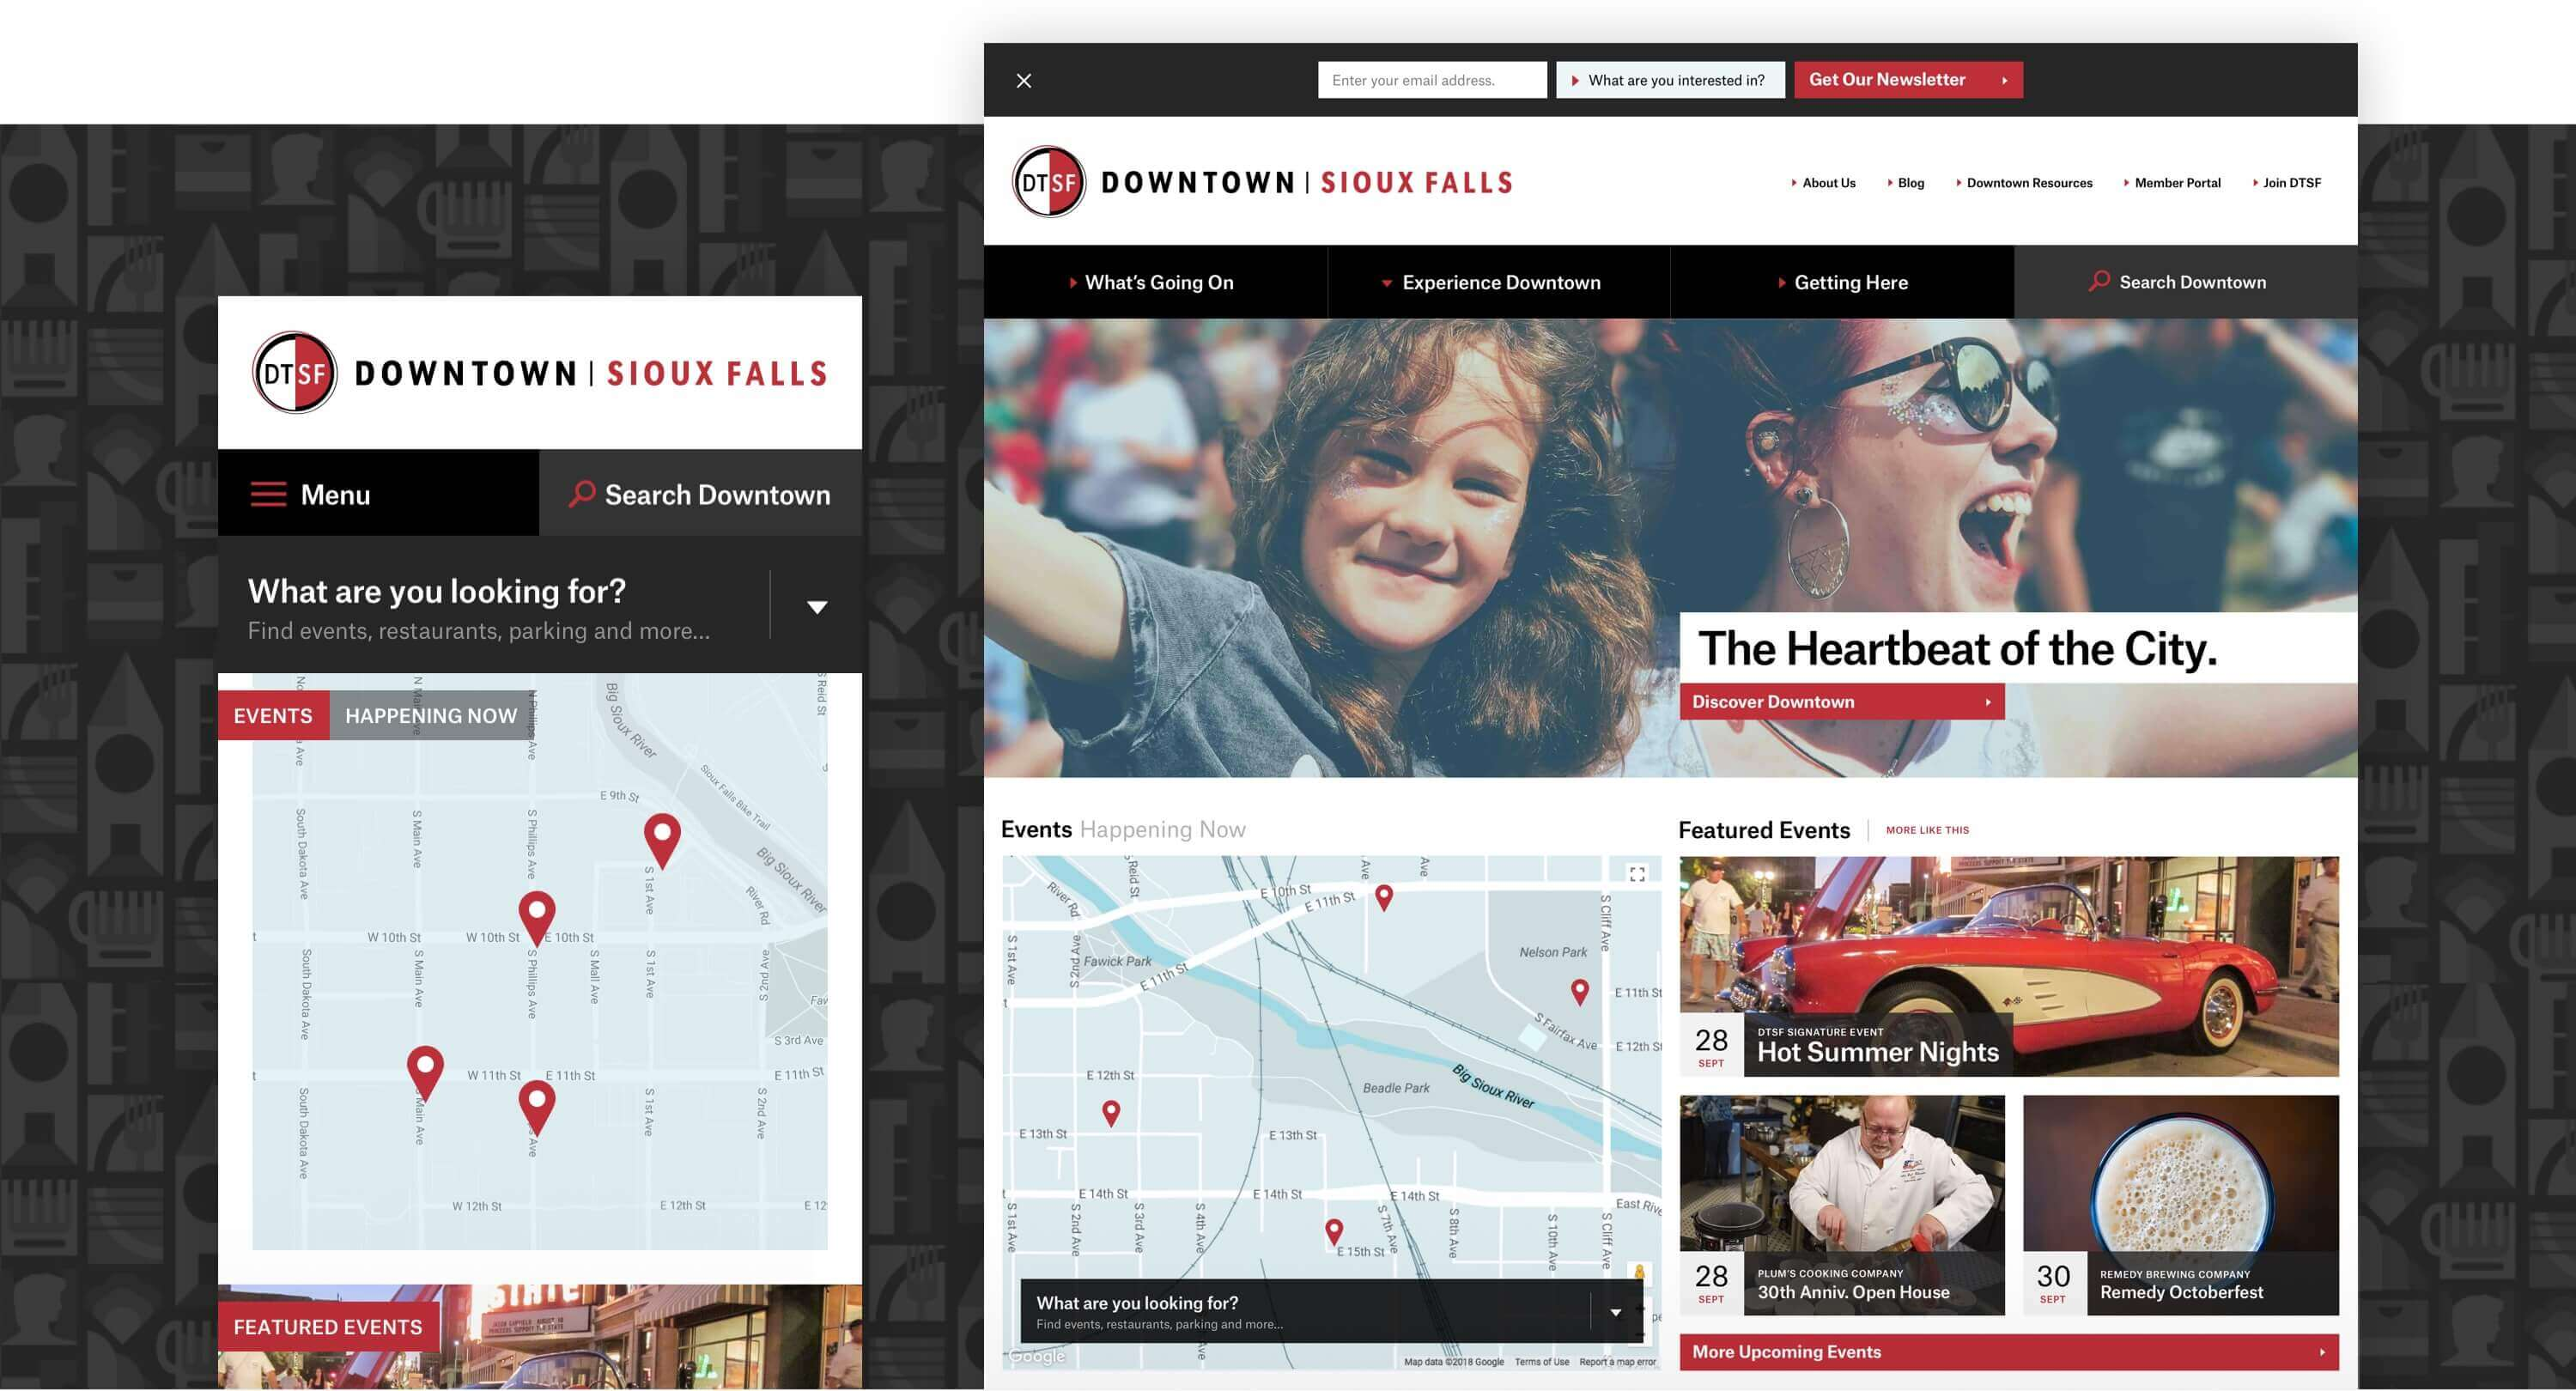 Downtown Sioux Falls homepage details